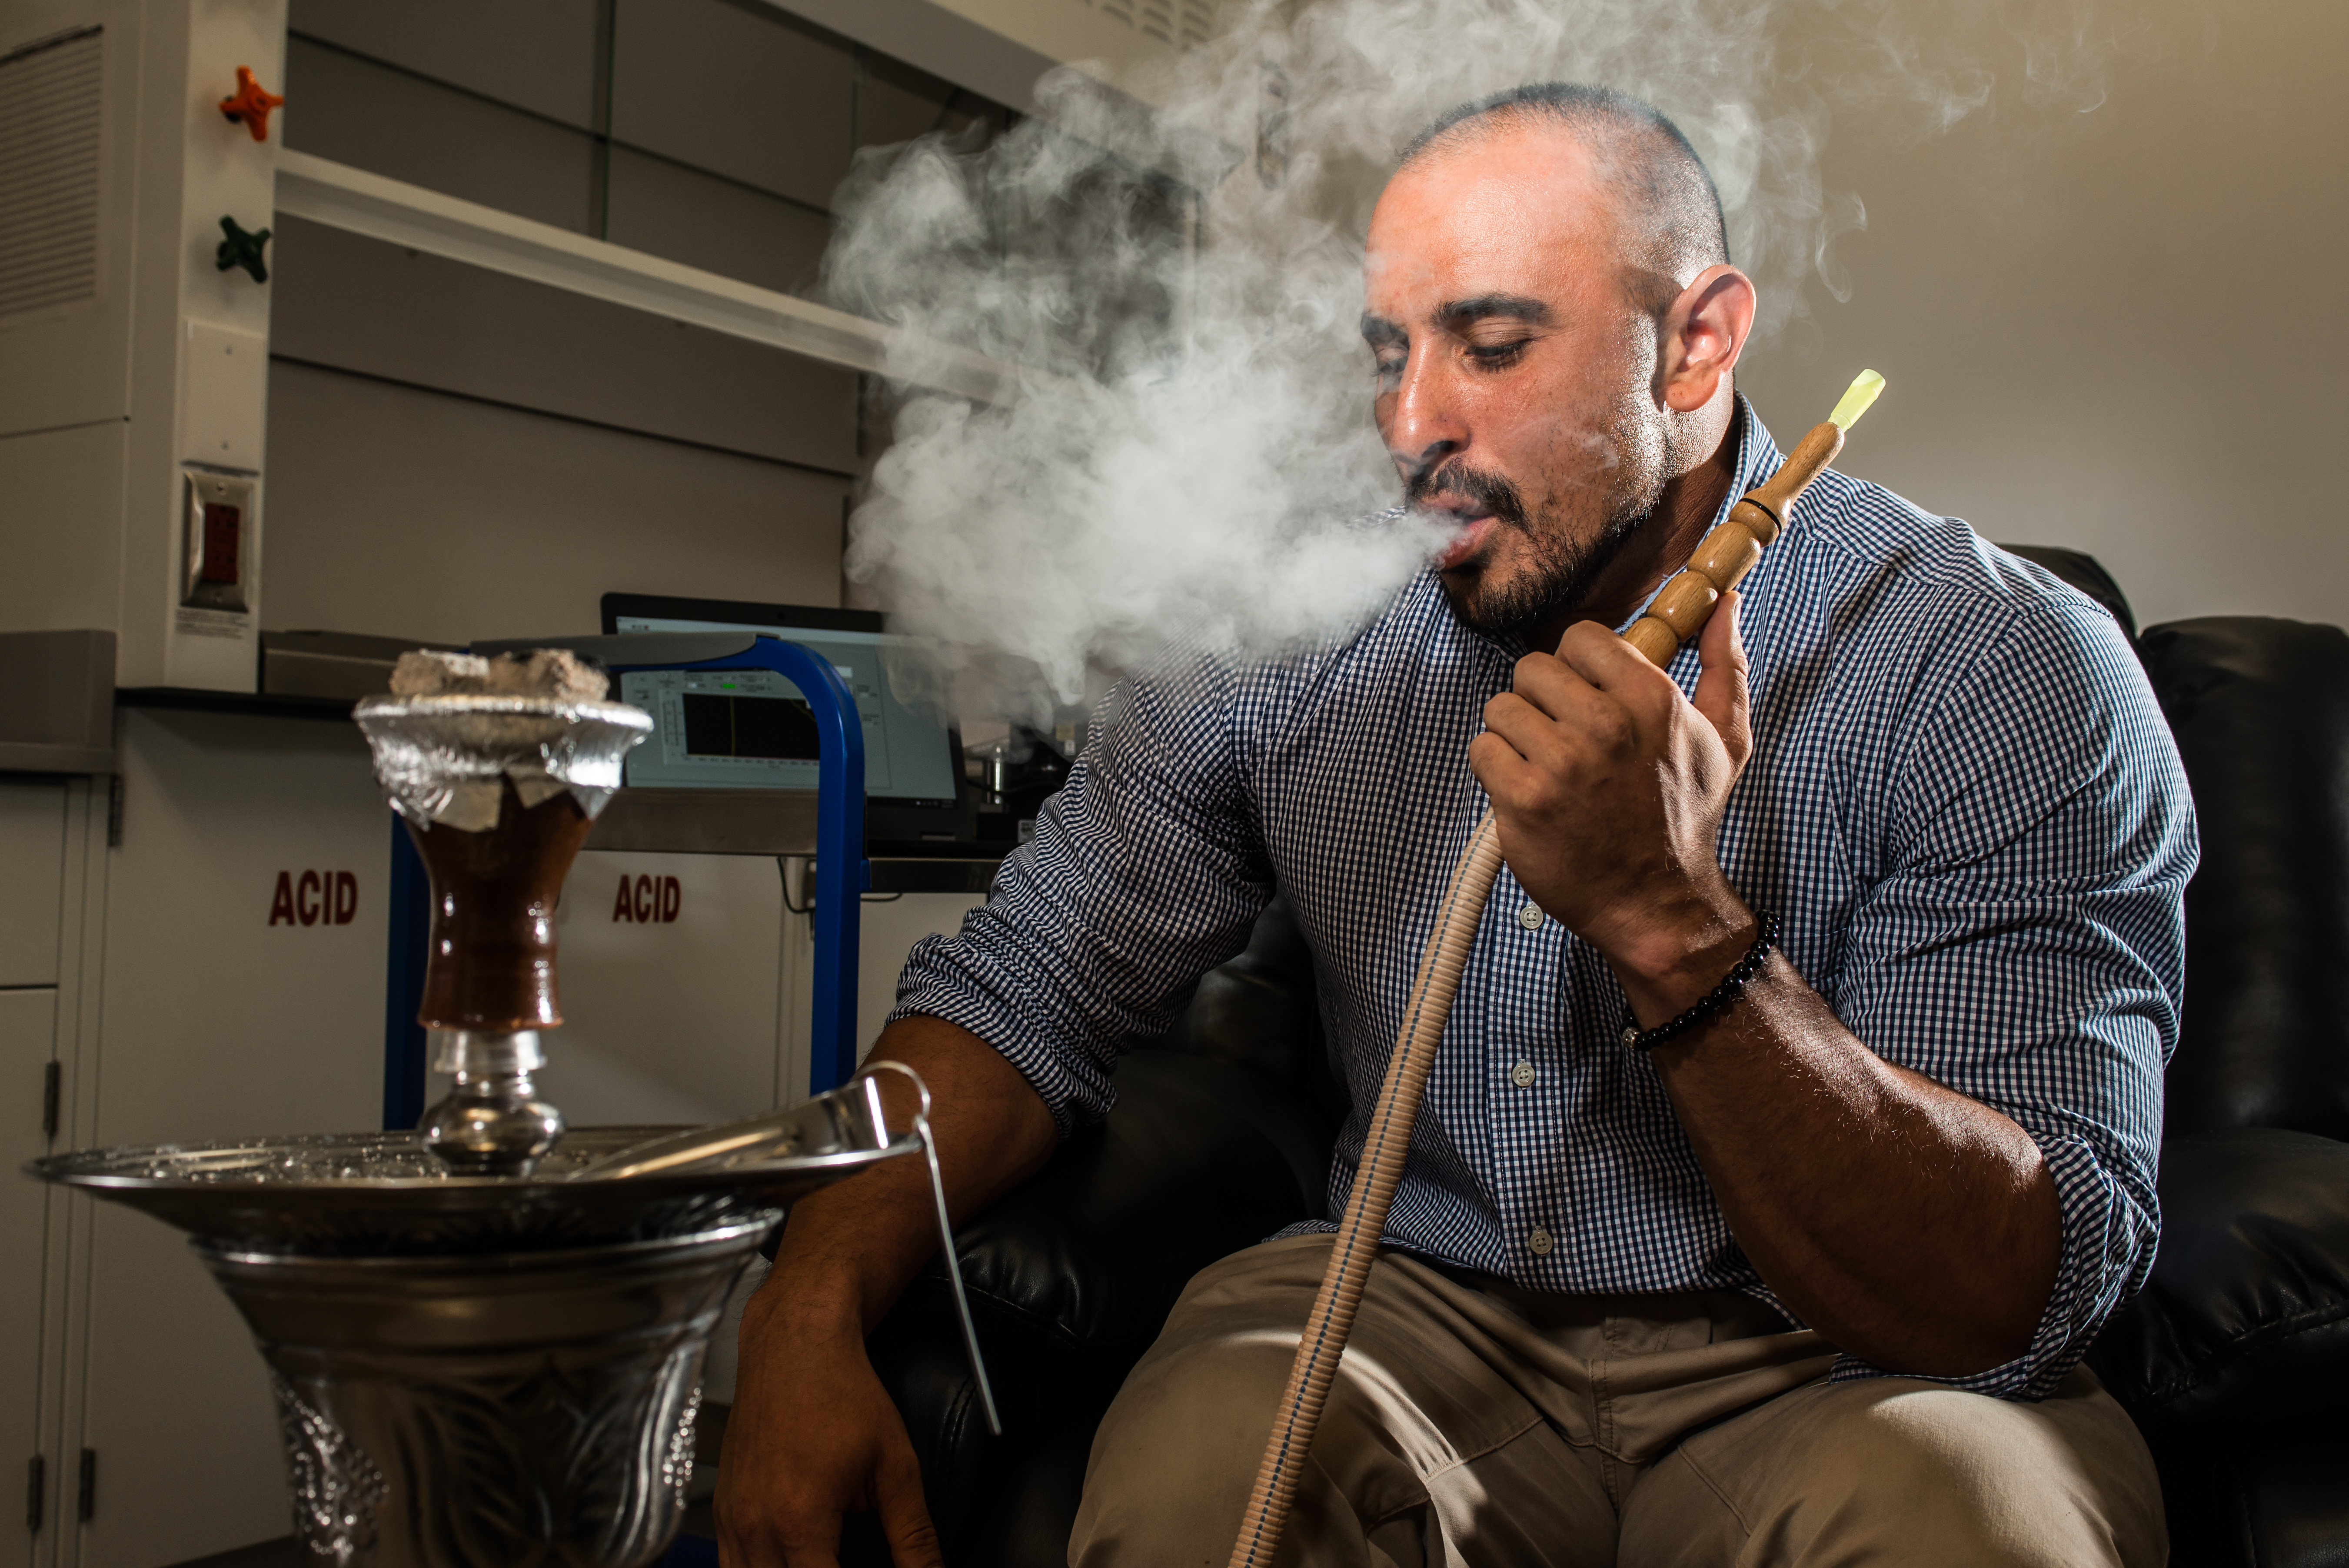 Stempel College unveils first clinical research lab for hookah smoking in South Florida